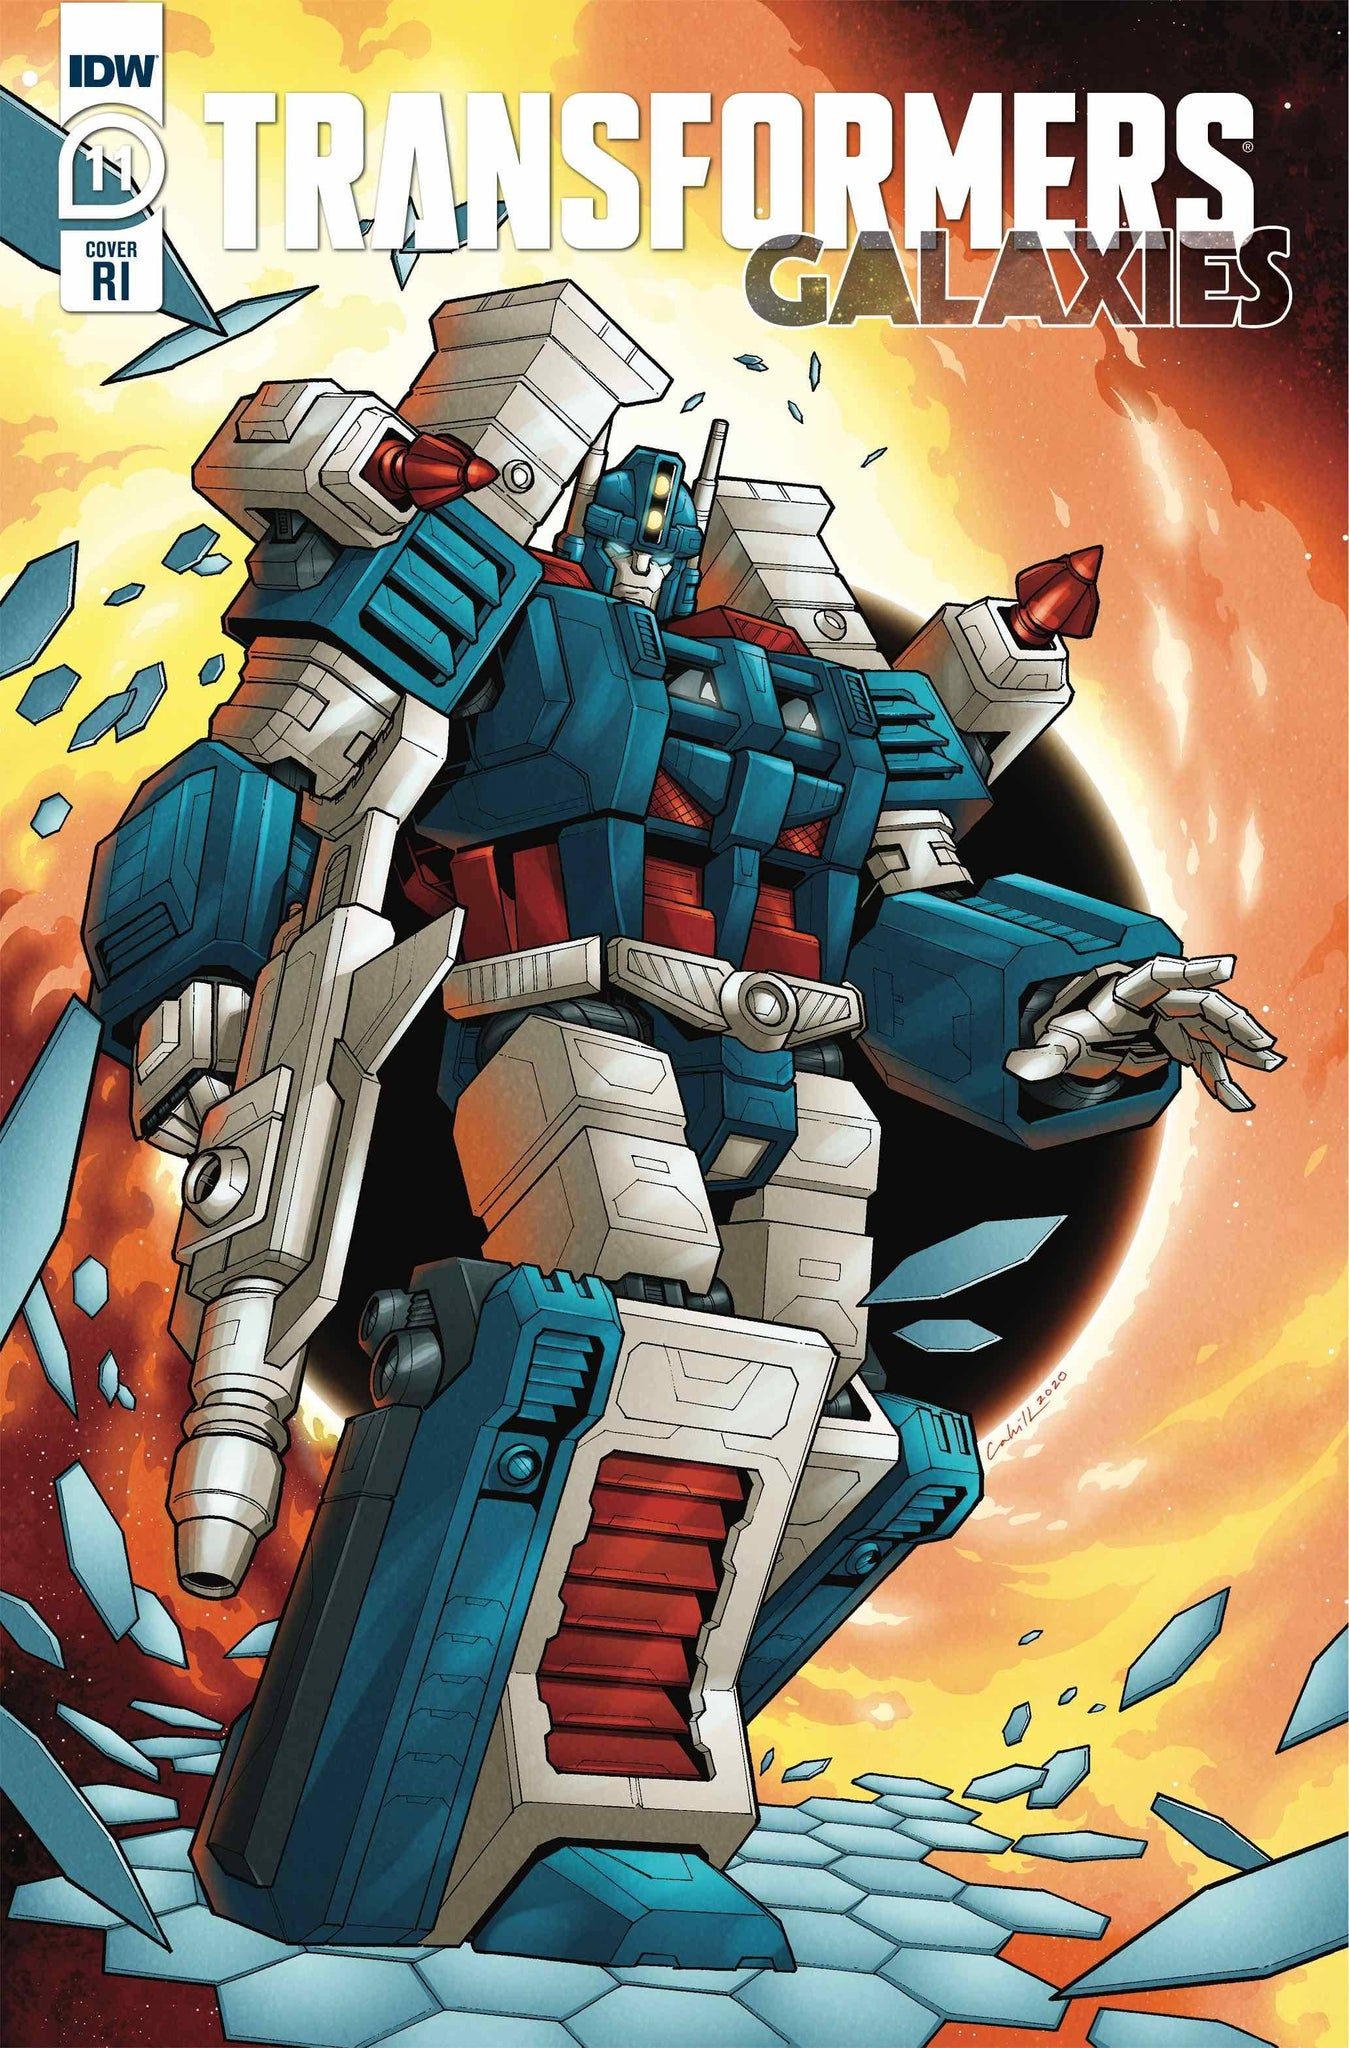 TRANSFORMERS GALAXIES #11 1:10 RATIO VARIANT CAHILL